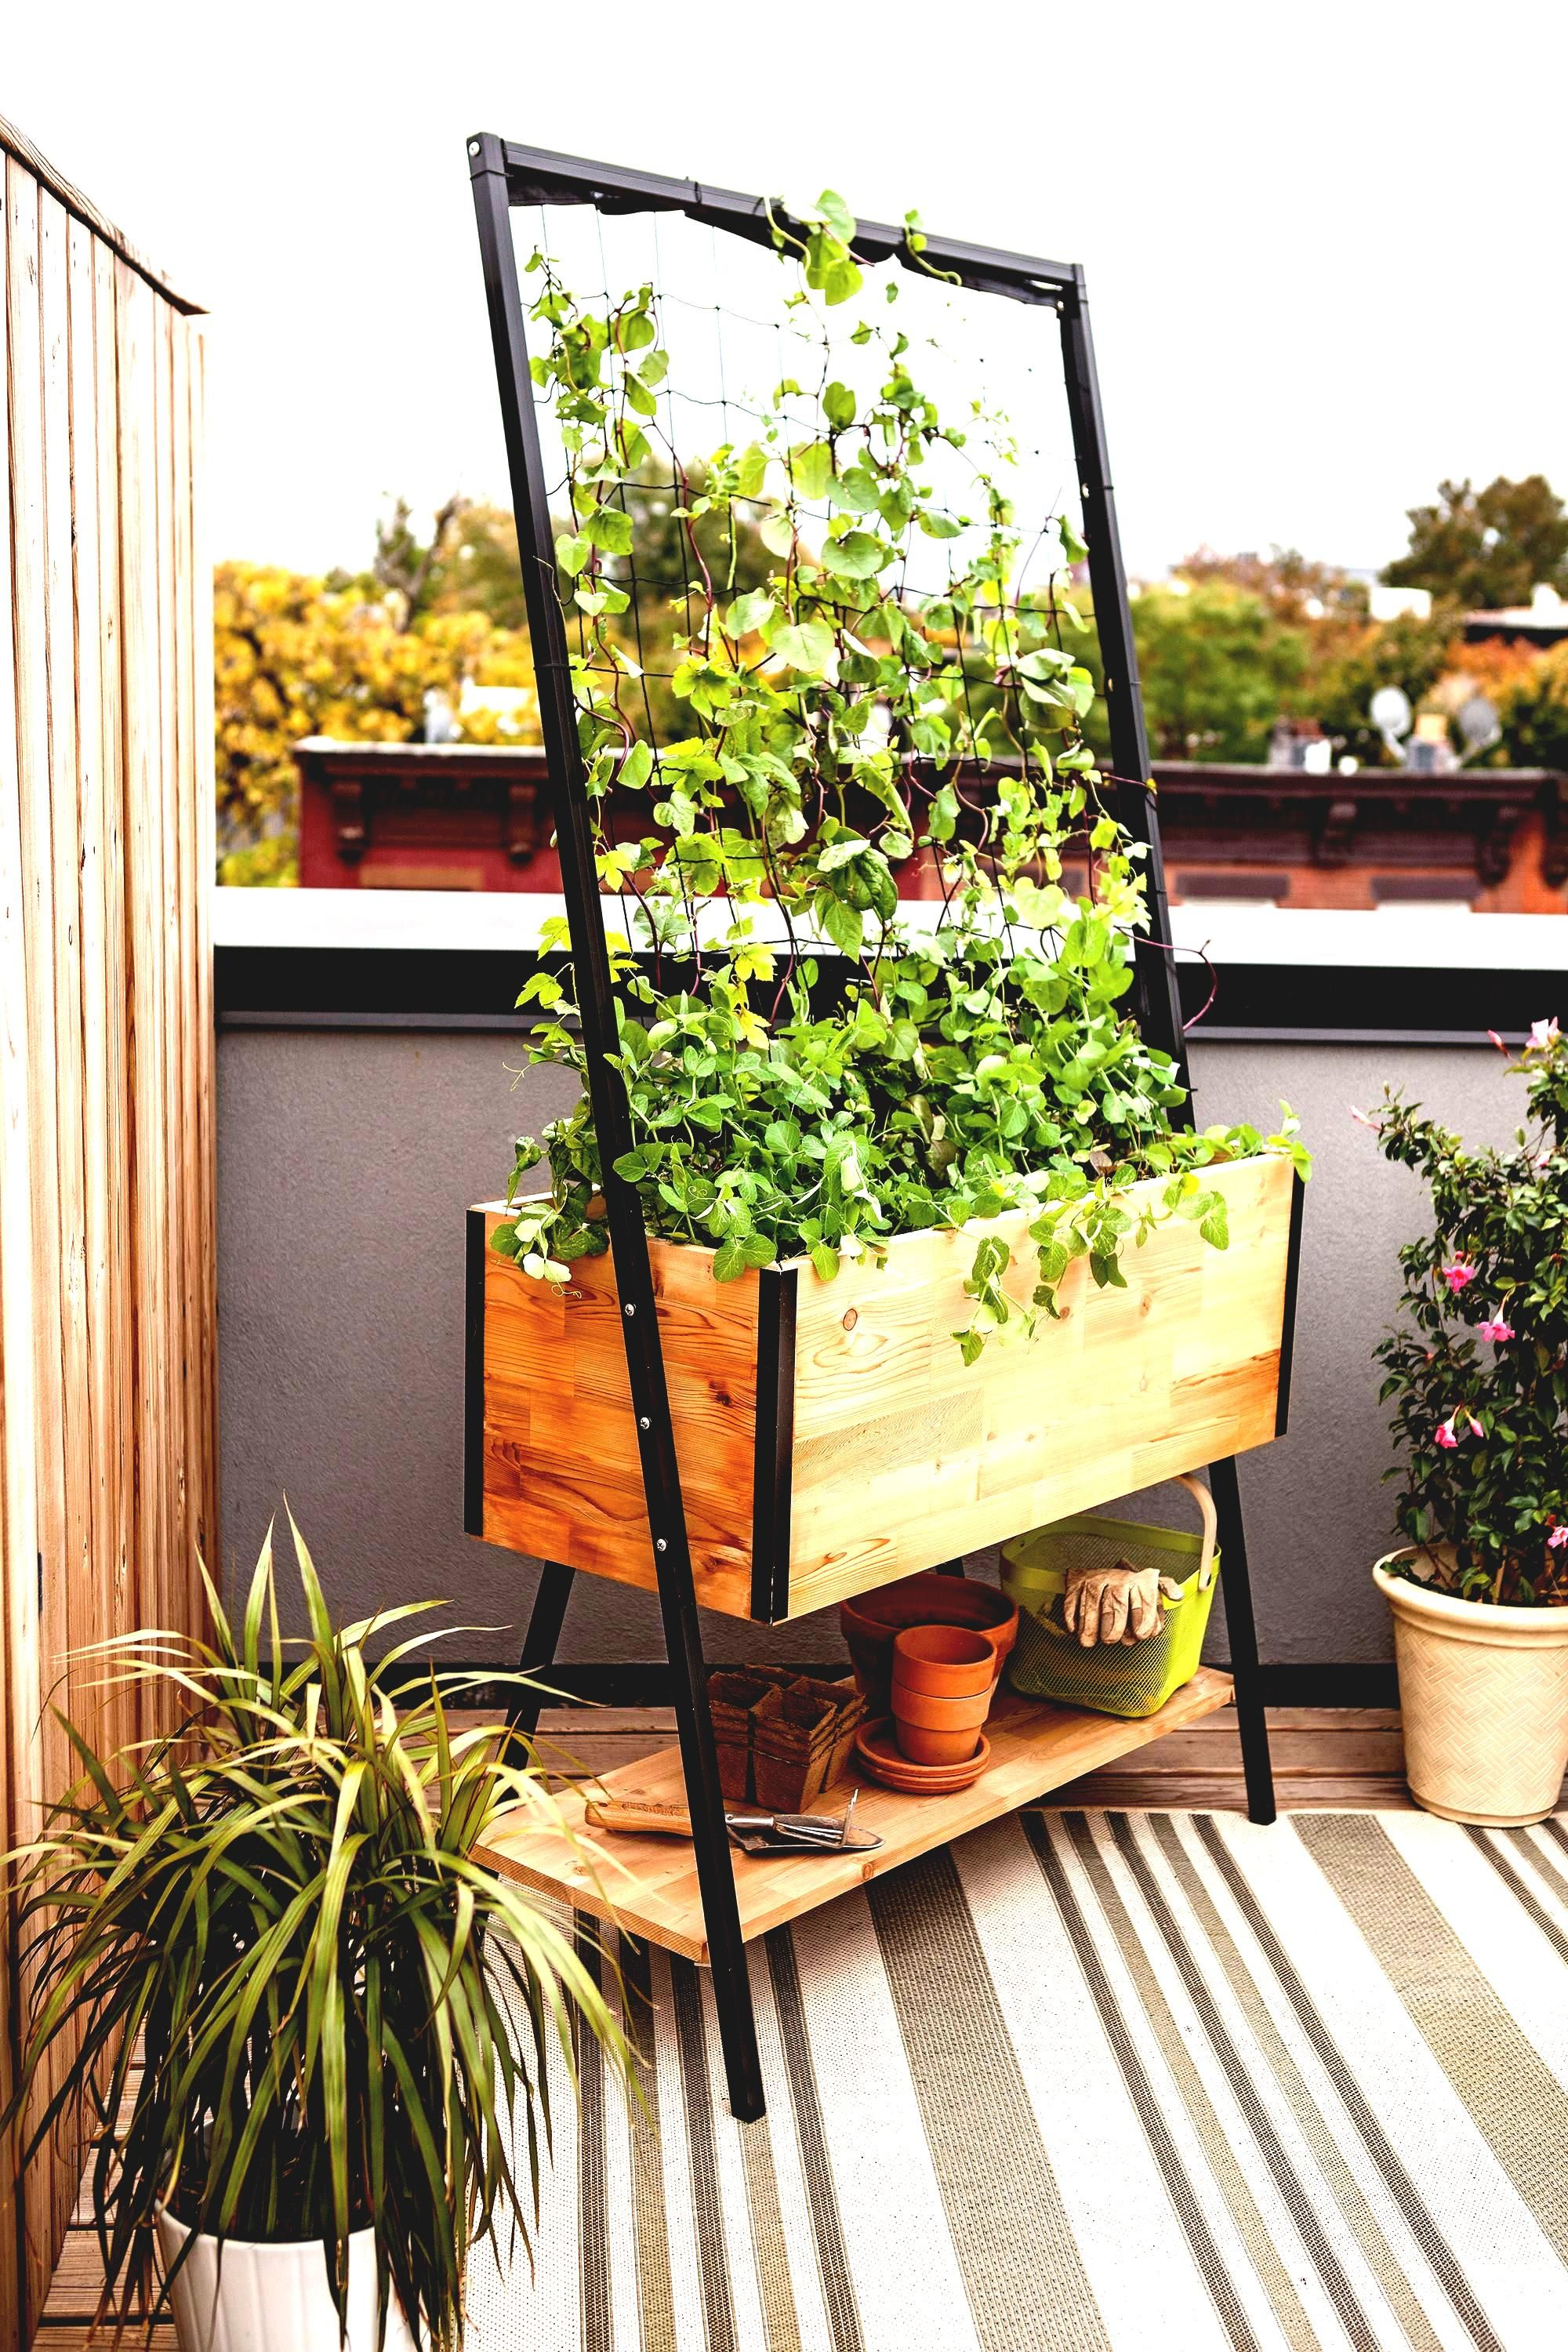 Awesome pots plants on apartment balcony raised garden